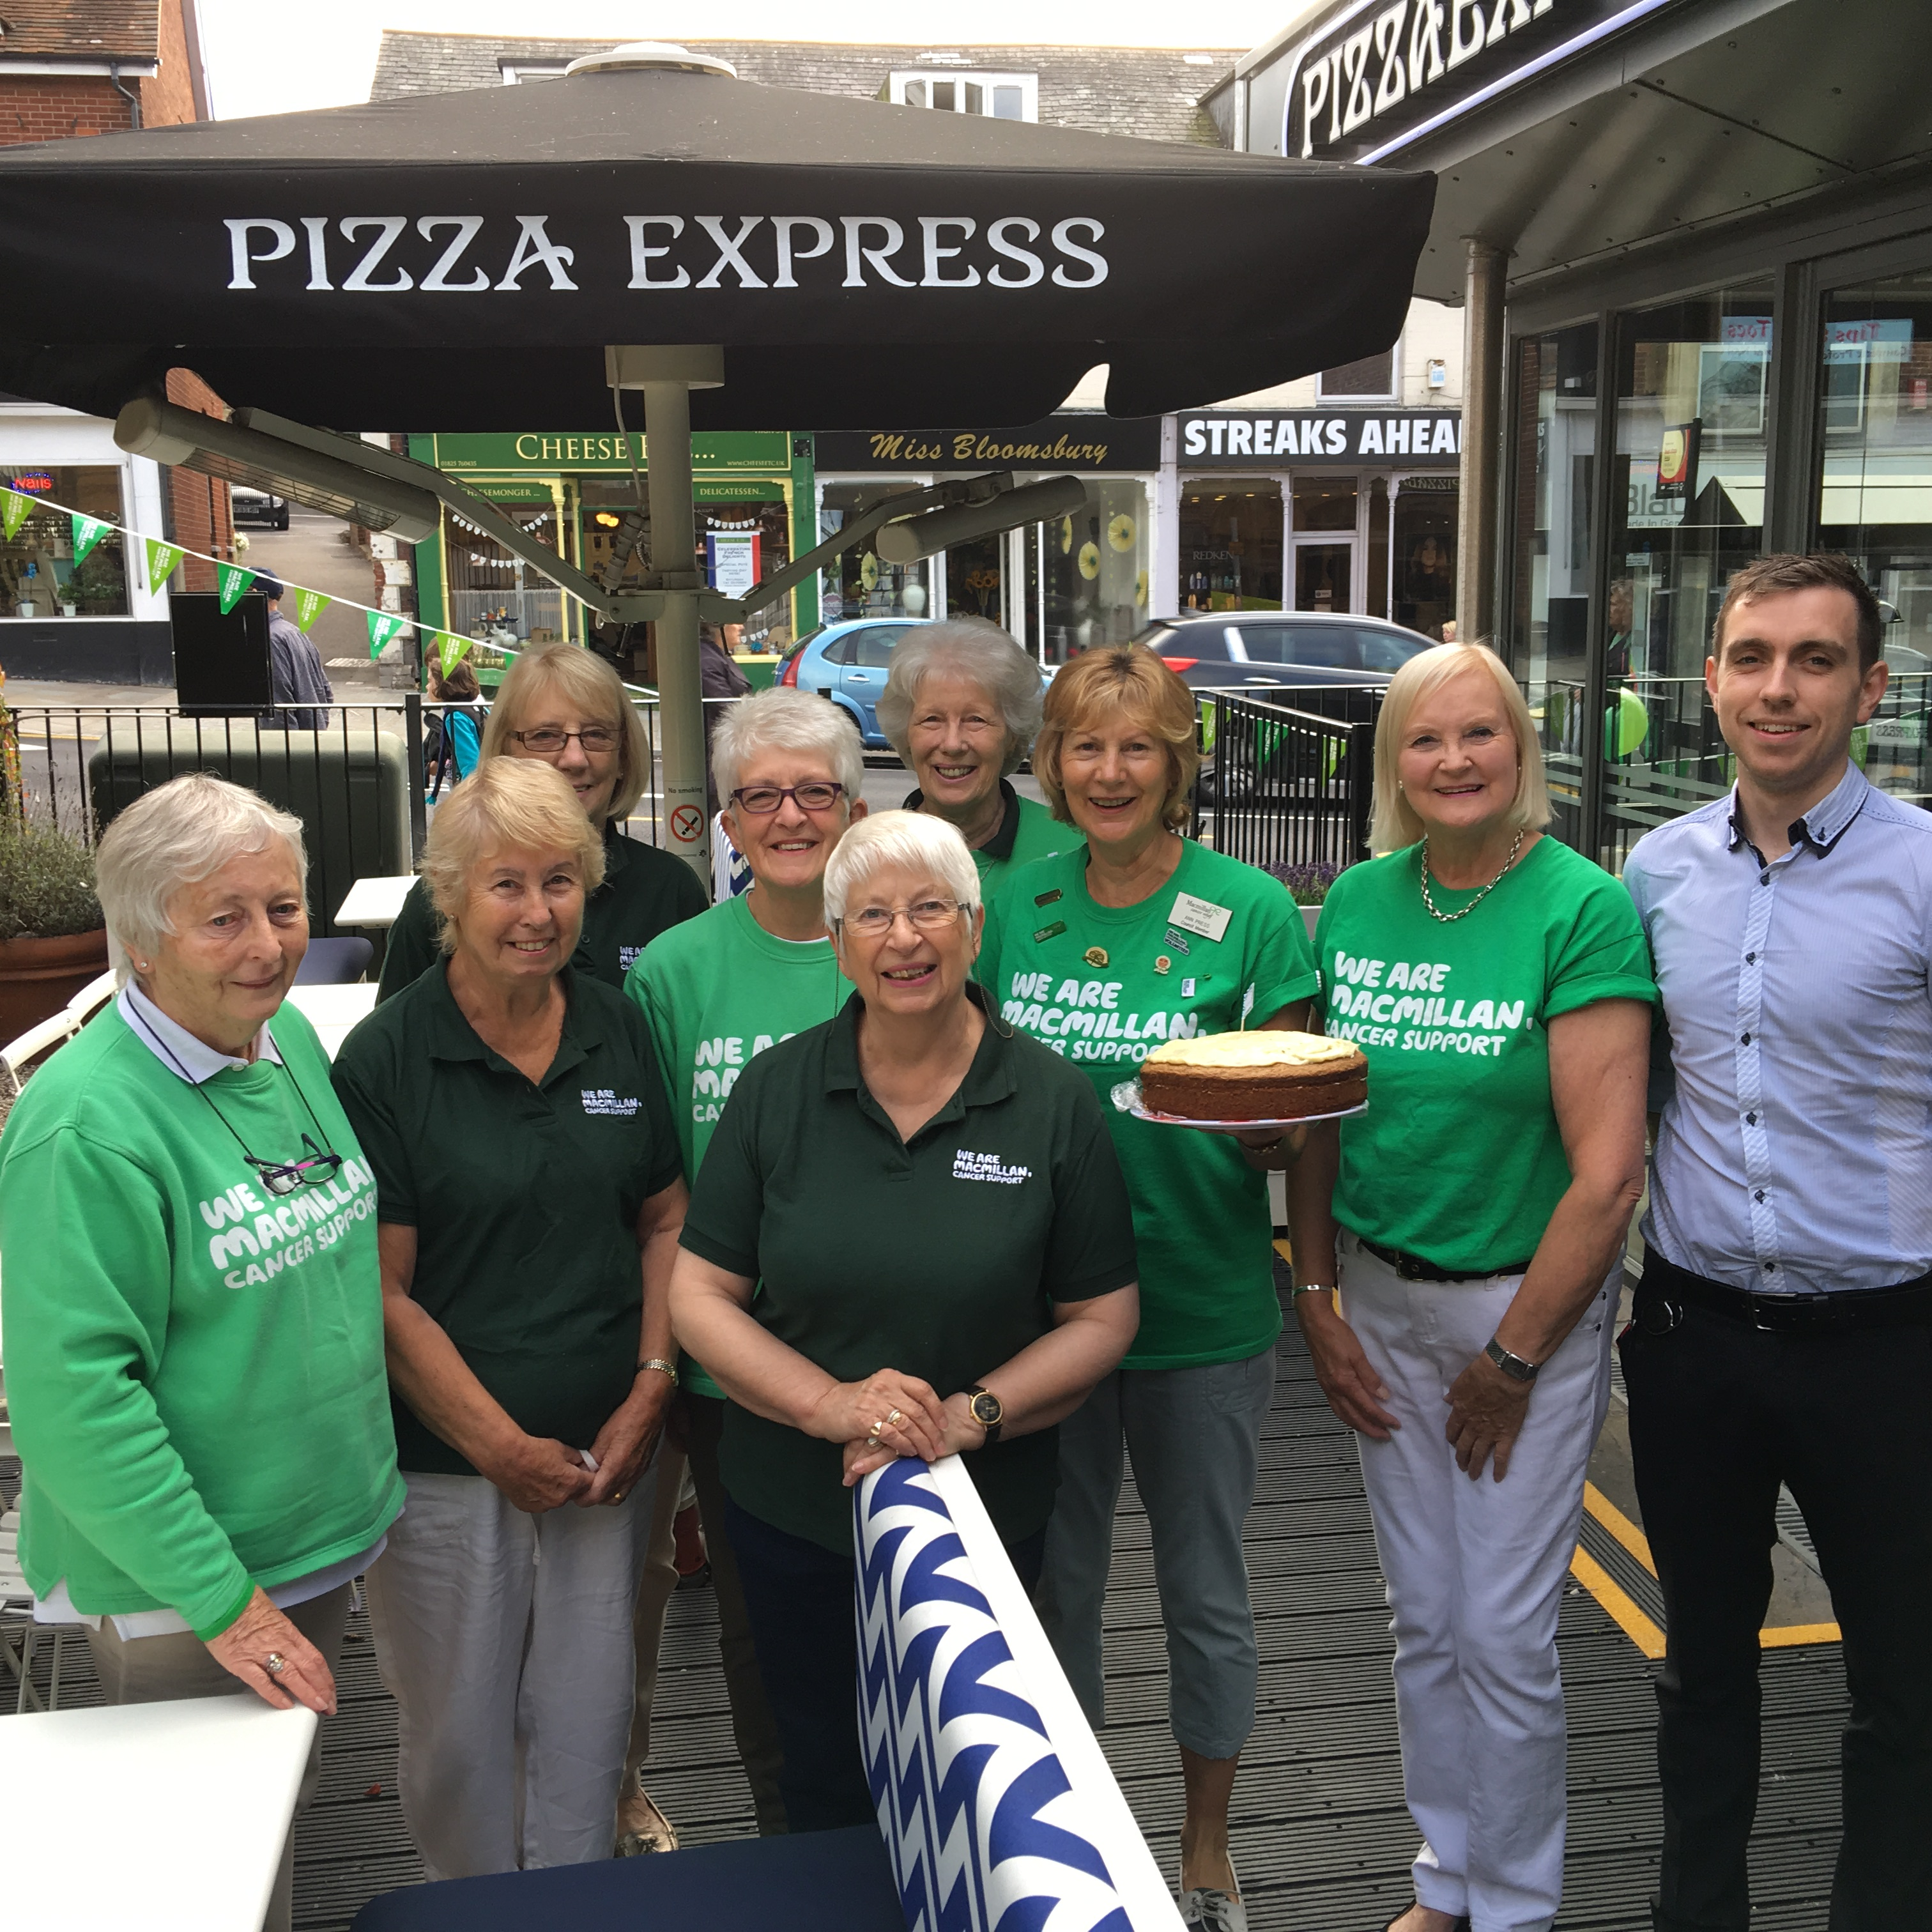 The Uckfield area Macmillan Cancer Support team which ran the Biggest Coffee Morning in the World event at Pizza Express. The restaurant manager, Brendan Kavanagh is also pictured.